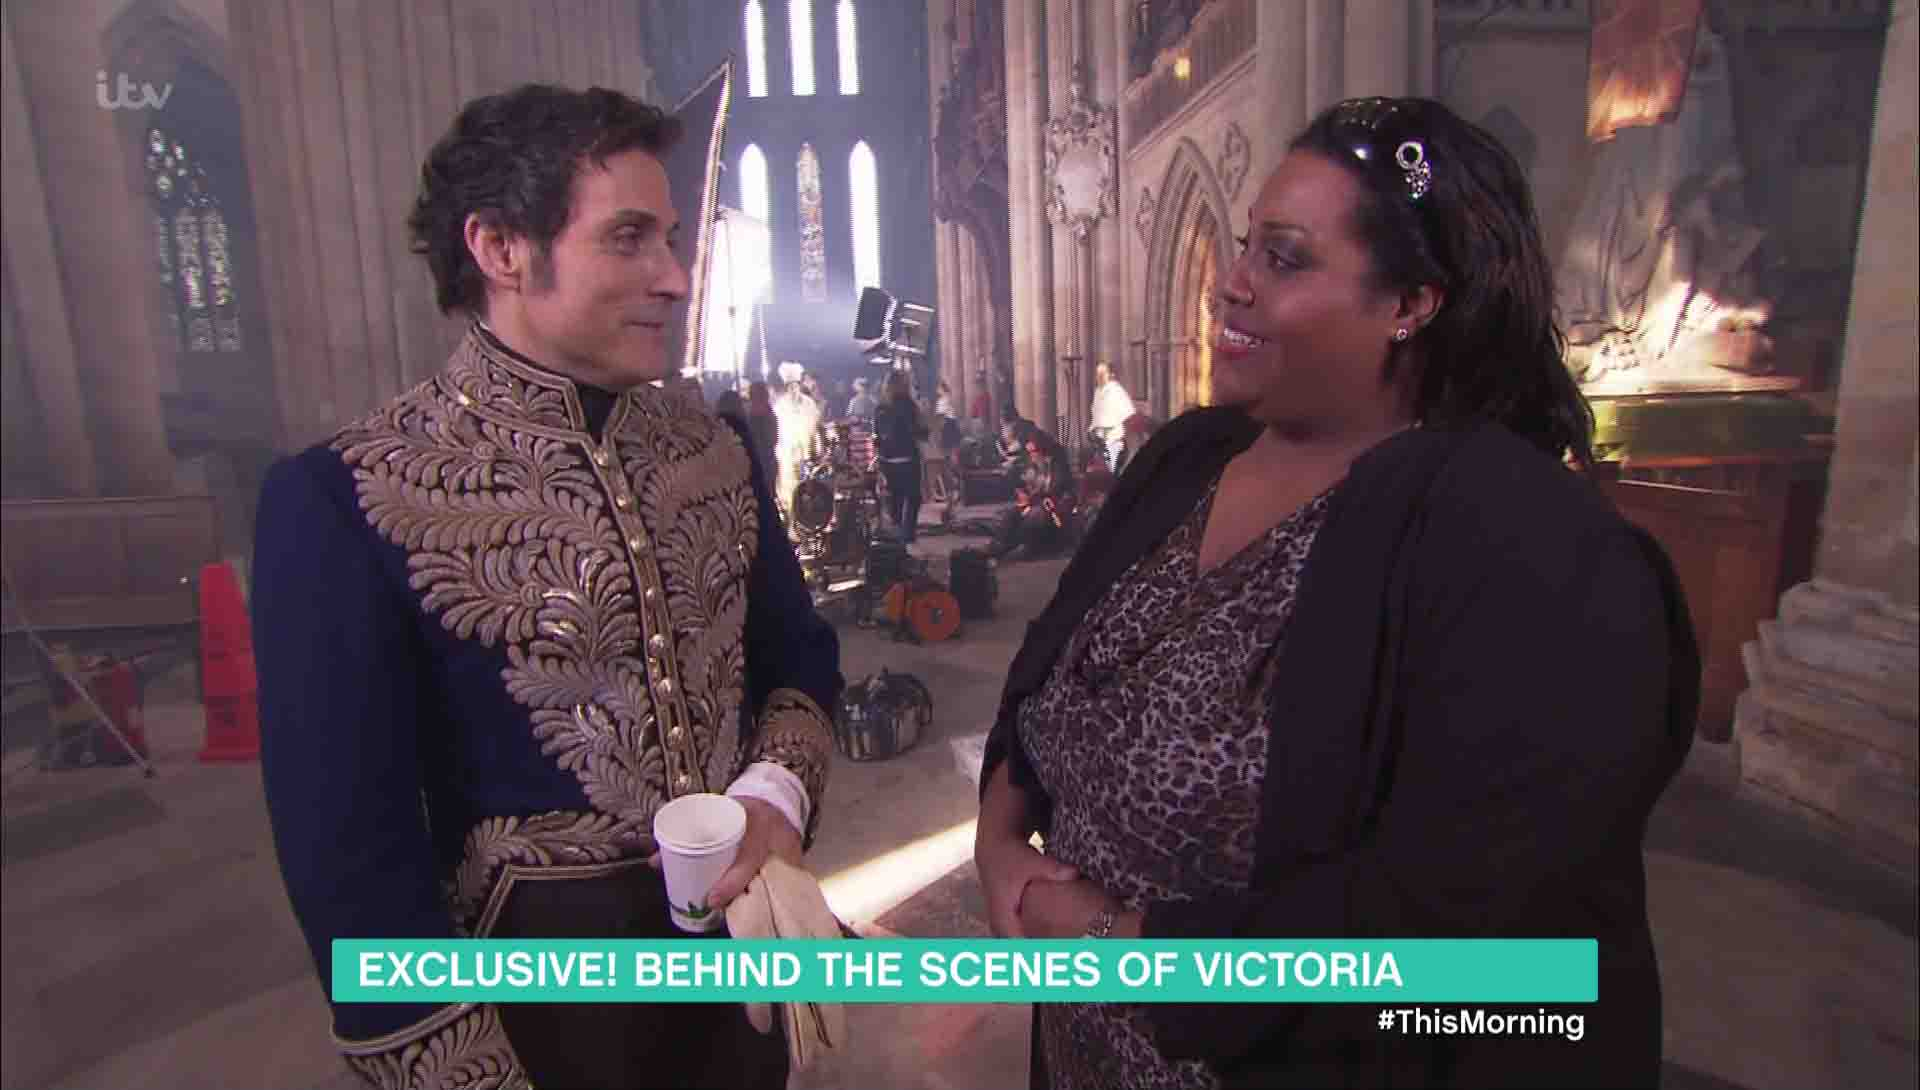 itv-this-morning-victoria-interview1